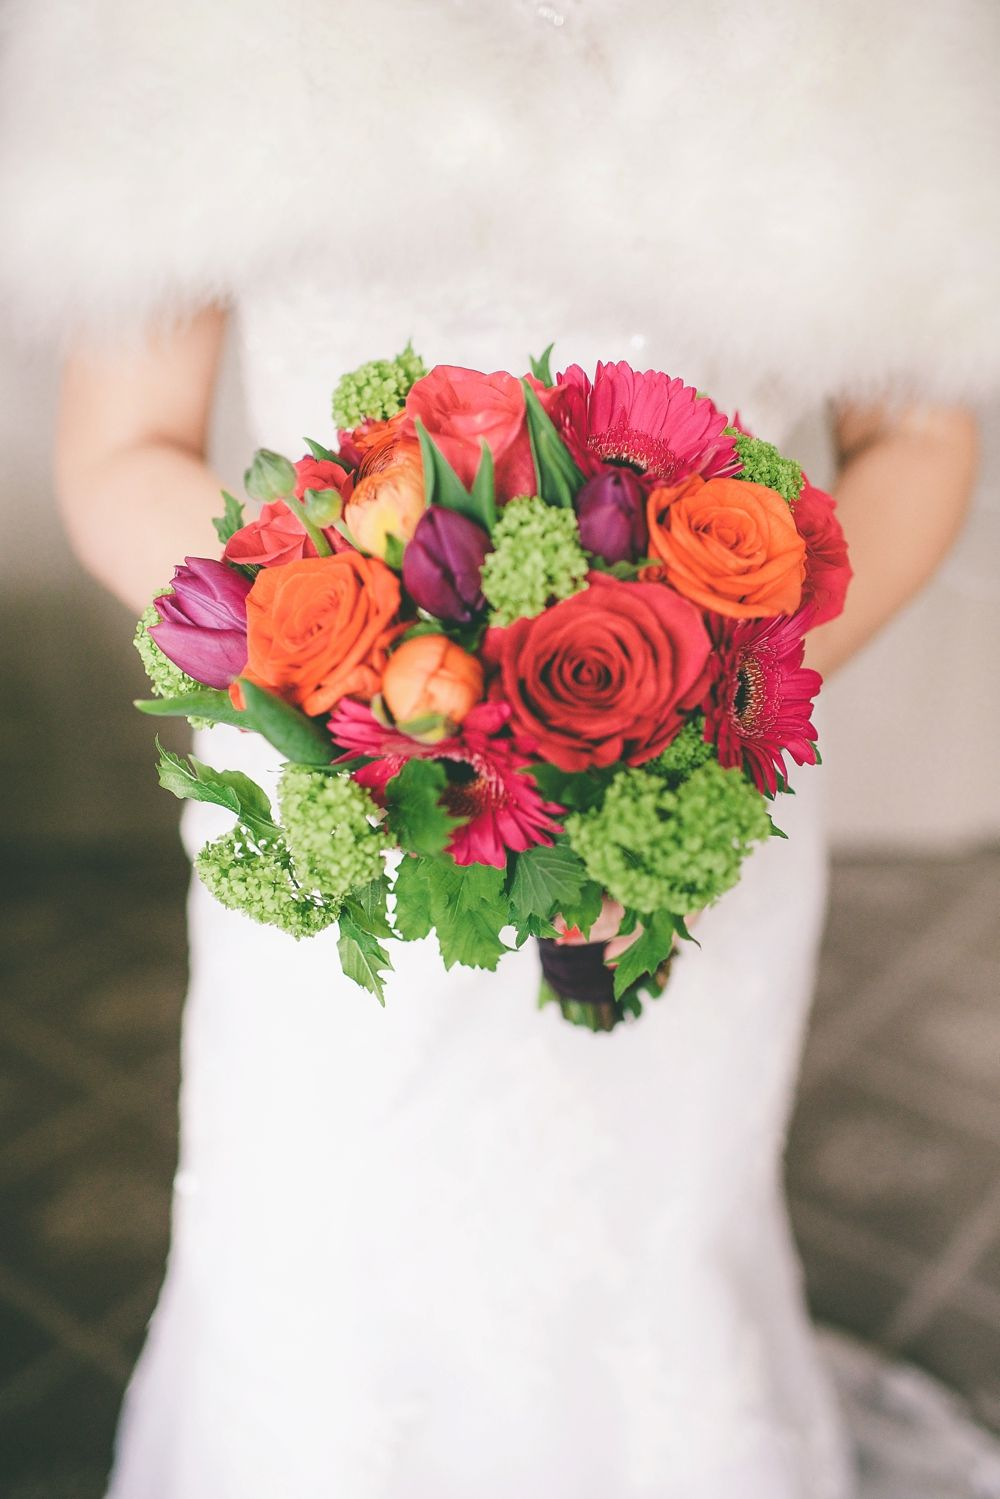 Ronald Joyce For A Vibrant Wedding At Bolton Abbey Colourful Bouquet Image By